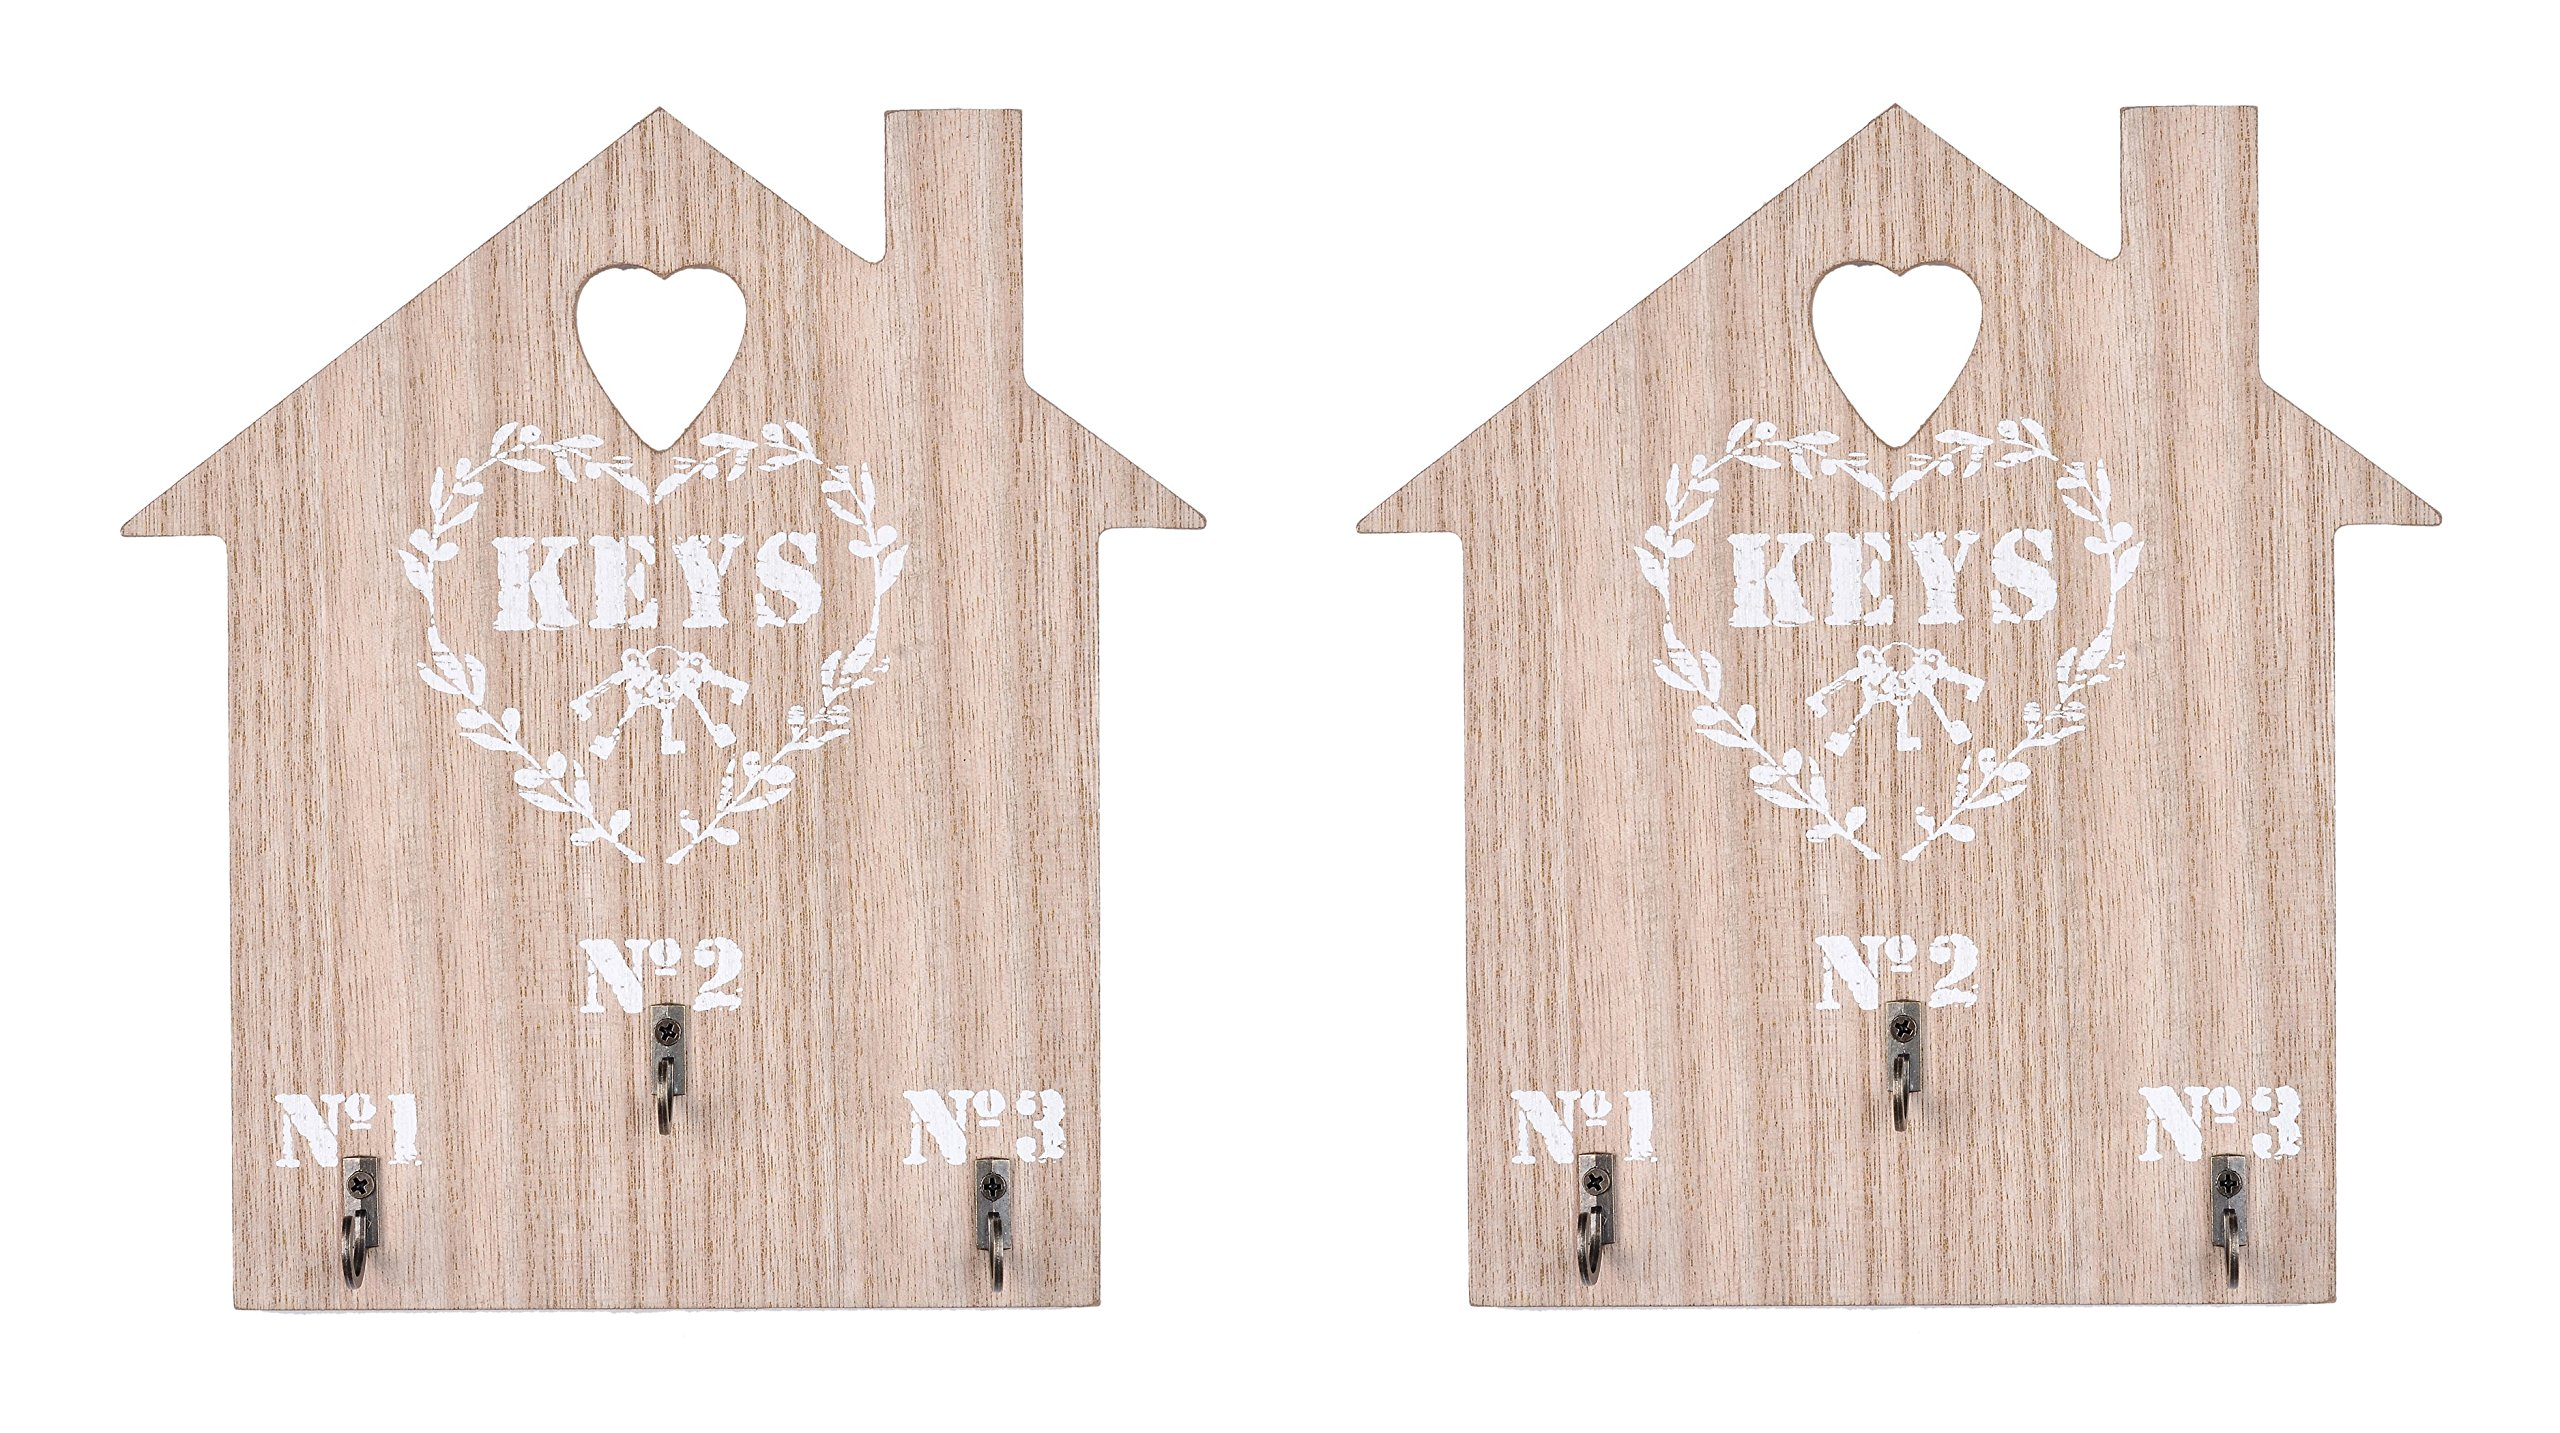 House Shaped Wood Cut-Out Key Holder Organizer - Wall Mount(Package of 2)